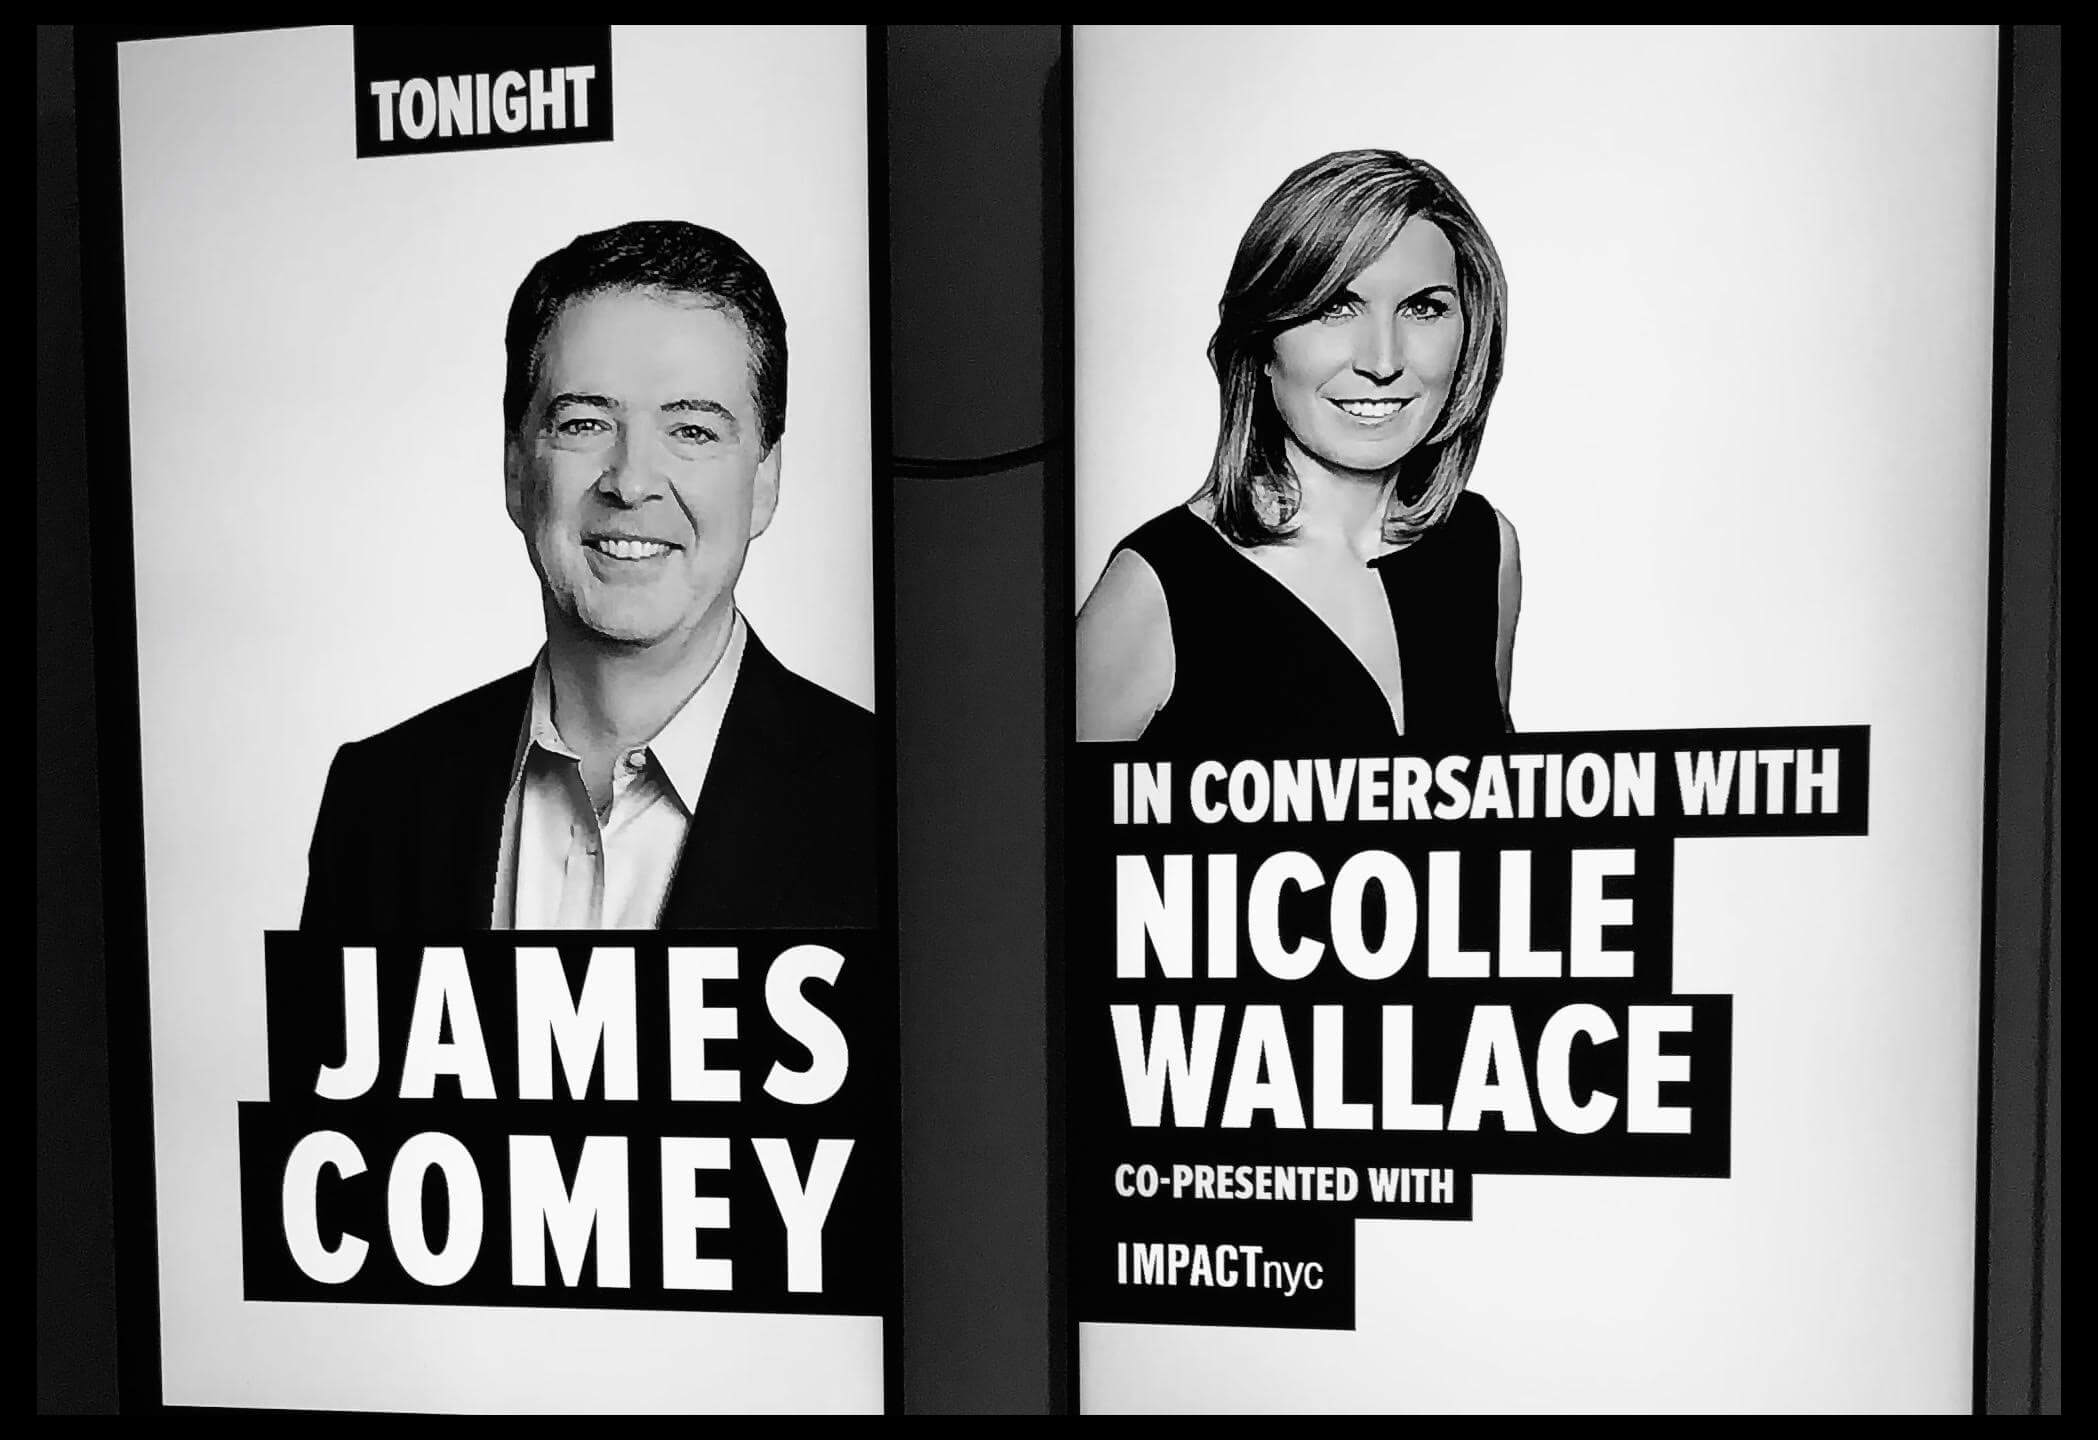 james-comey-nicole-wallace